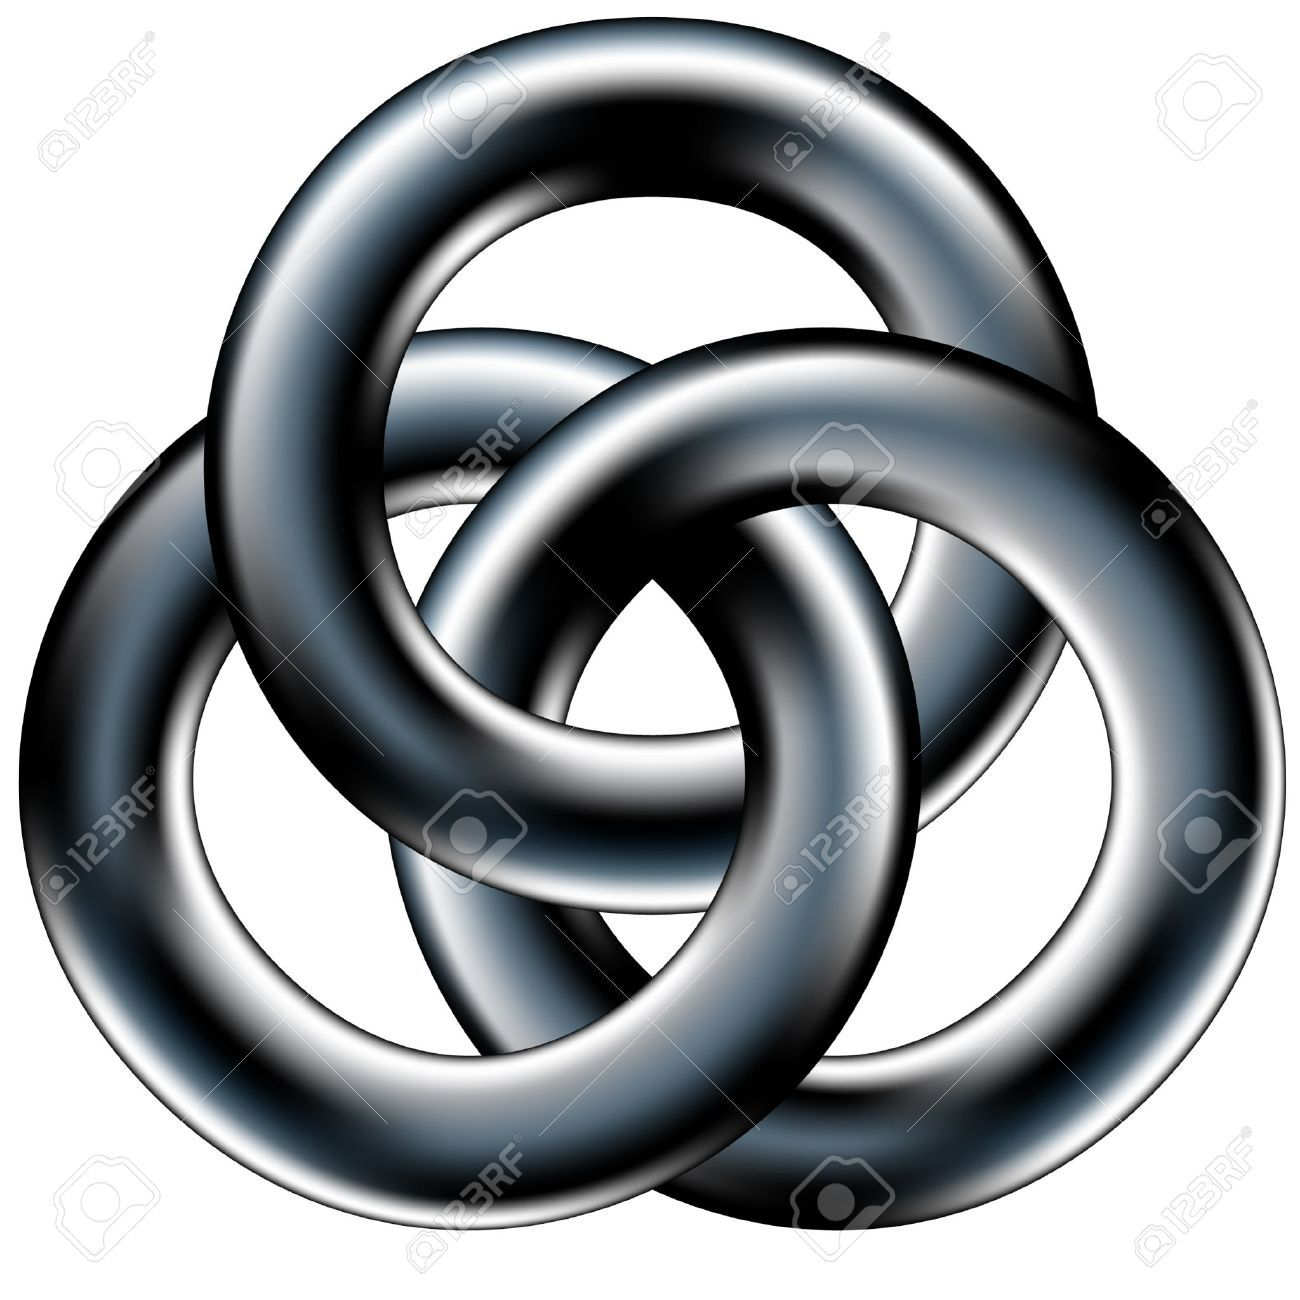 Ghana horton chpt 17 ruptured ant celtic unity symbol photo about celtic wedding band or corporate unity symbol vector illustration with metallic texture 8821115 buycottarizona Image collections